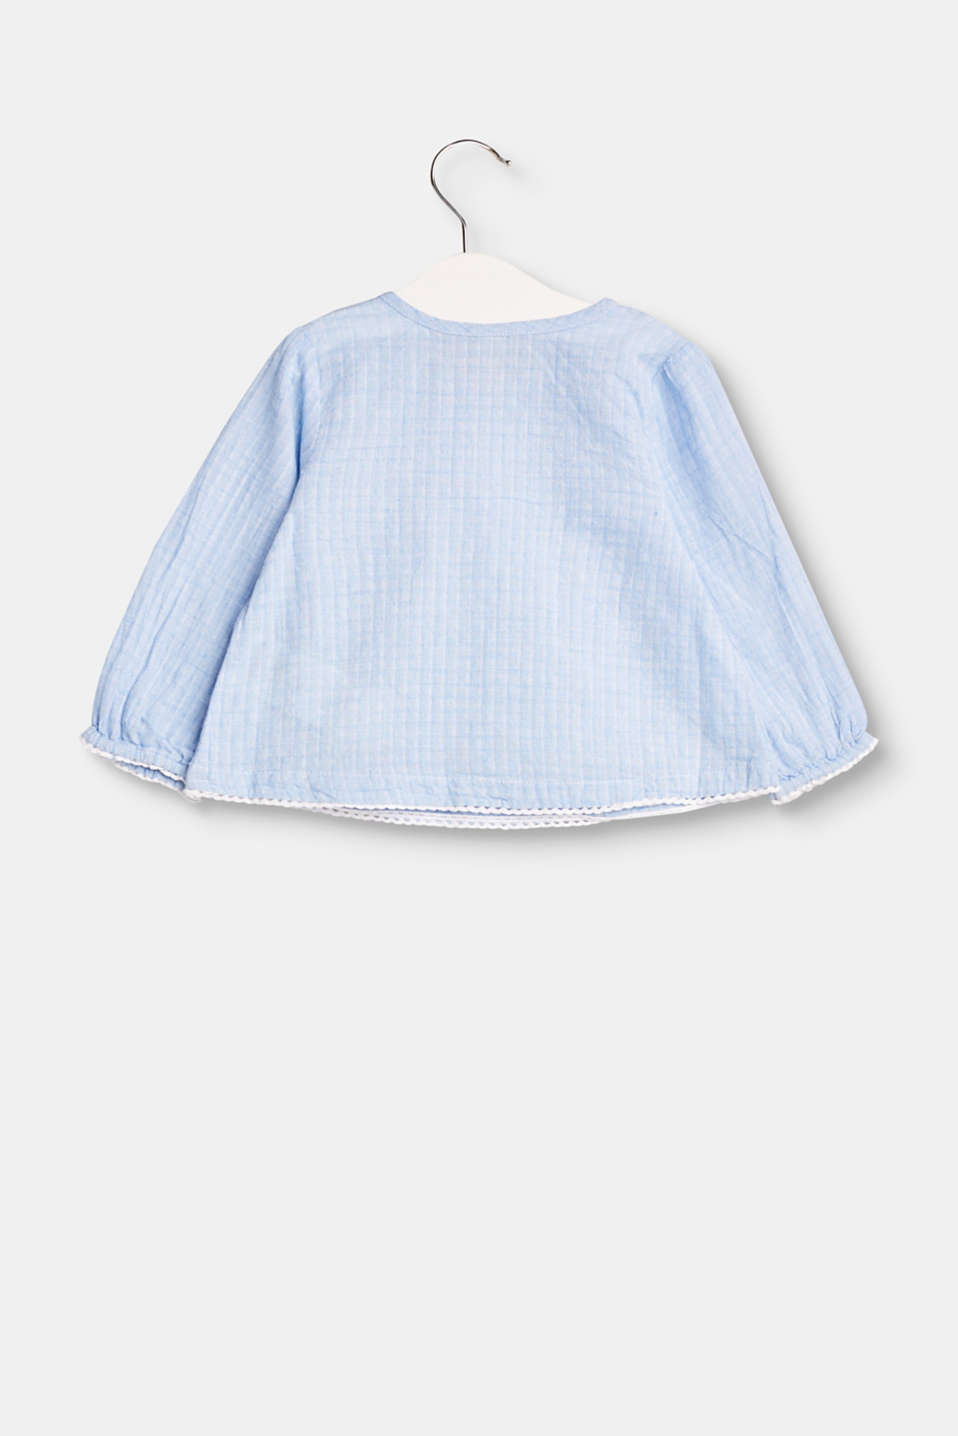 Textured cotton blouse with frills